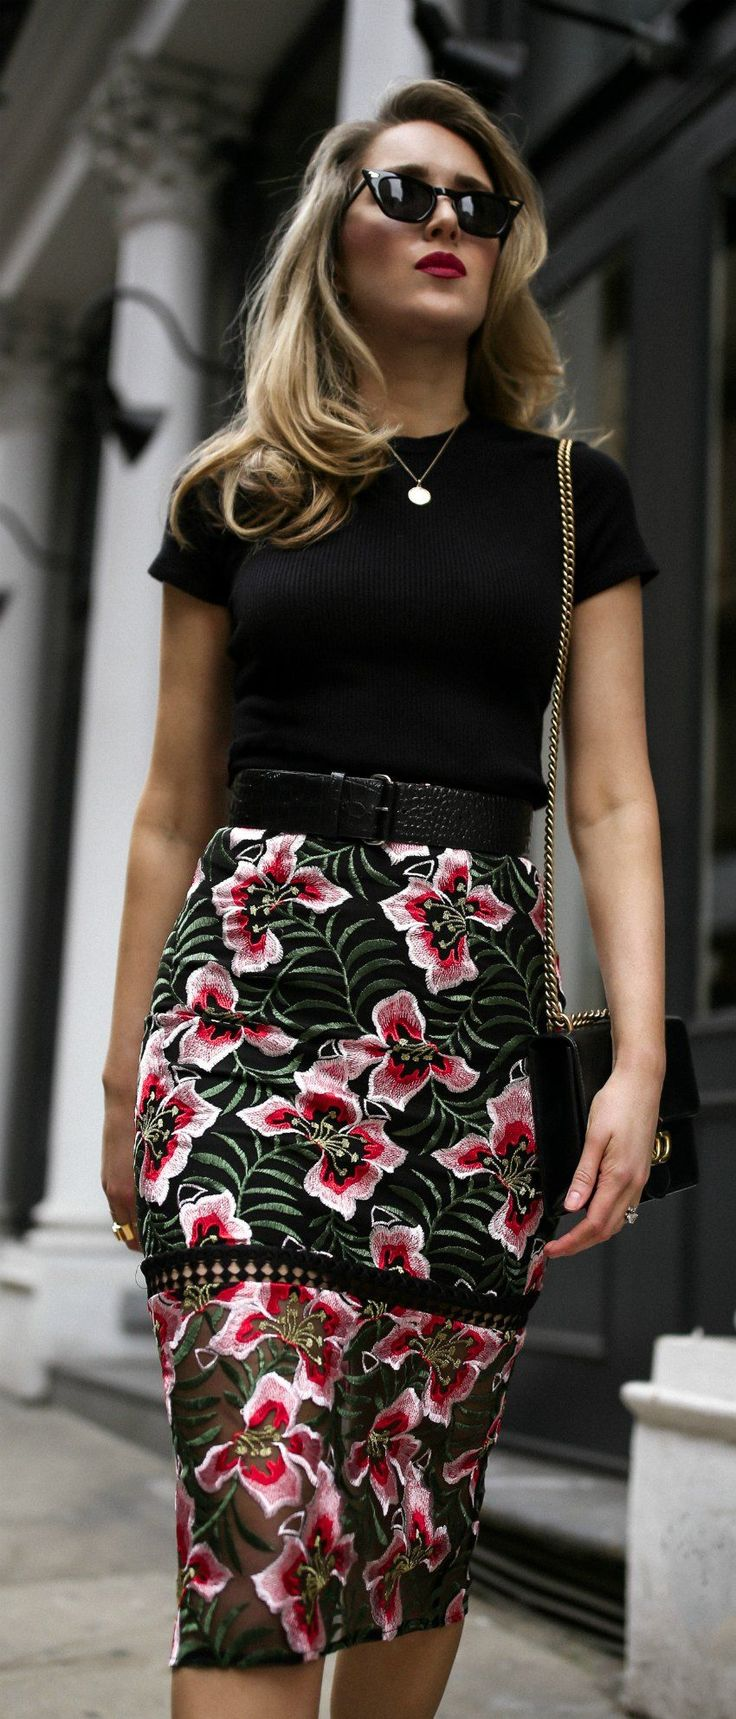 The Perfect Transition Piece: Dark Floral Skirt // Dark floral midi pencil skirt, black short sleeved tee shirt, black embossed waist belt, black patent leather mary jane pumps, black shoulder bag with chain, black retro sunglasses {Gucci, Jimmy Choo, Anthropologie, transitional style, winter to spring outfits, dark red lip, classic style, workwear outfits, chic fashion, nyc blogger}